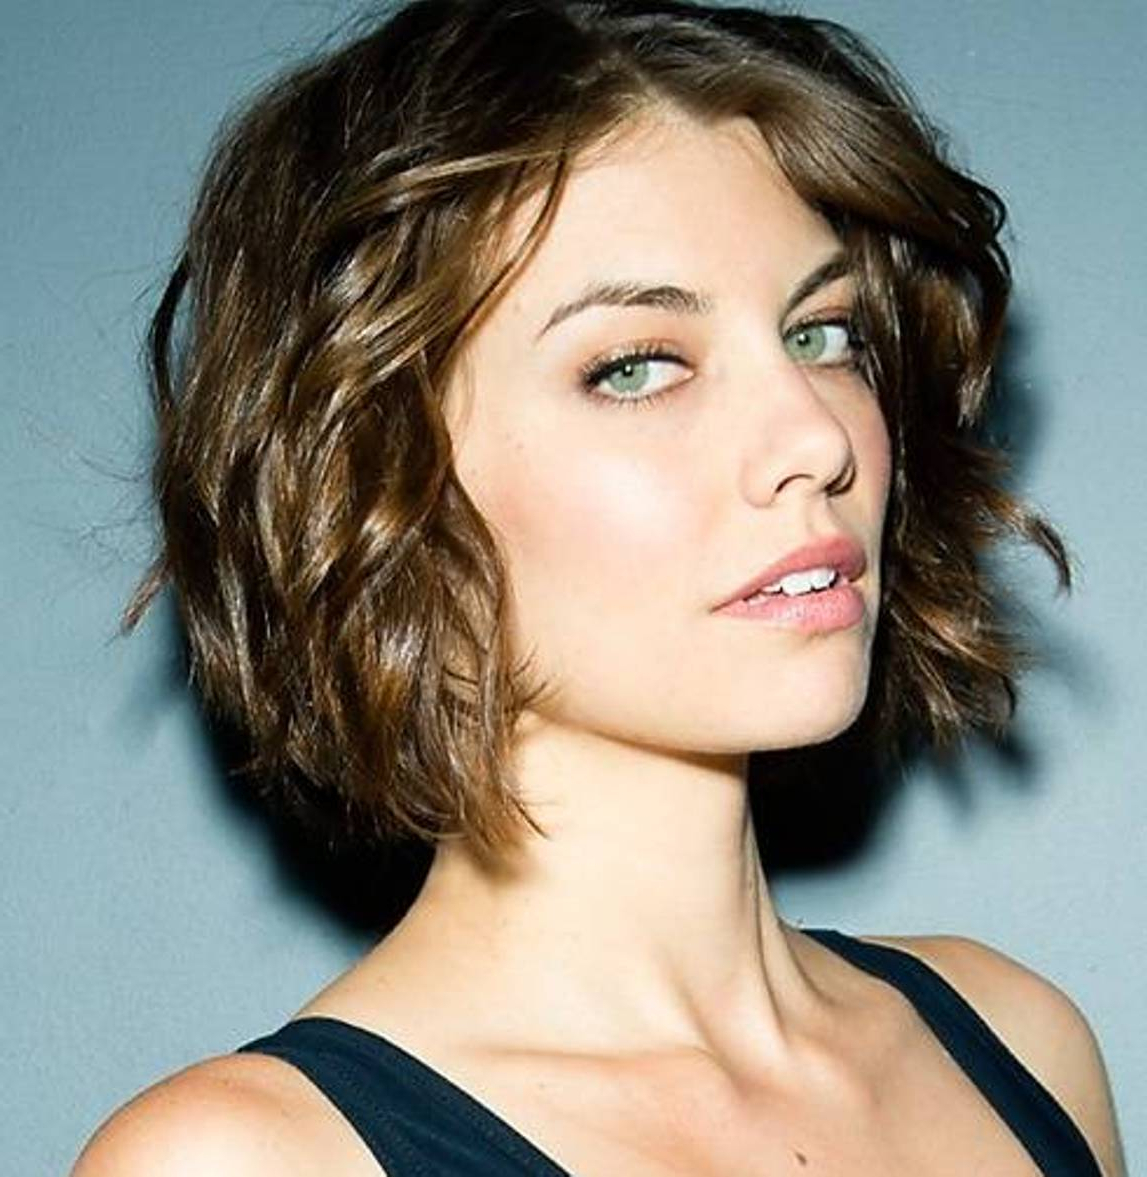 30 Short Wavy Hairstyles For Bouncy Textured Looks Inside Short Hairstyles For Very Curly Hair (View 9 of 25)